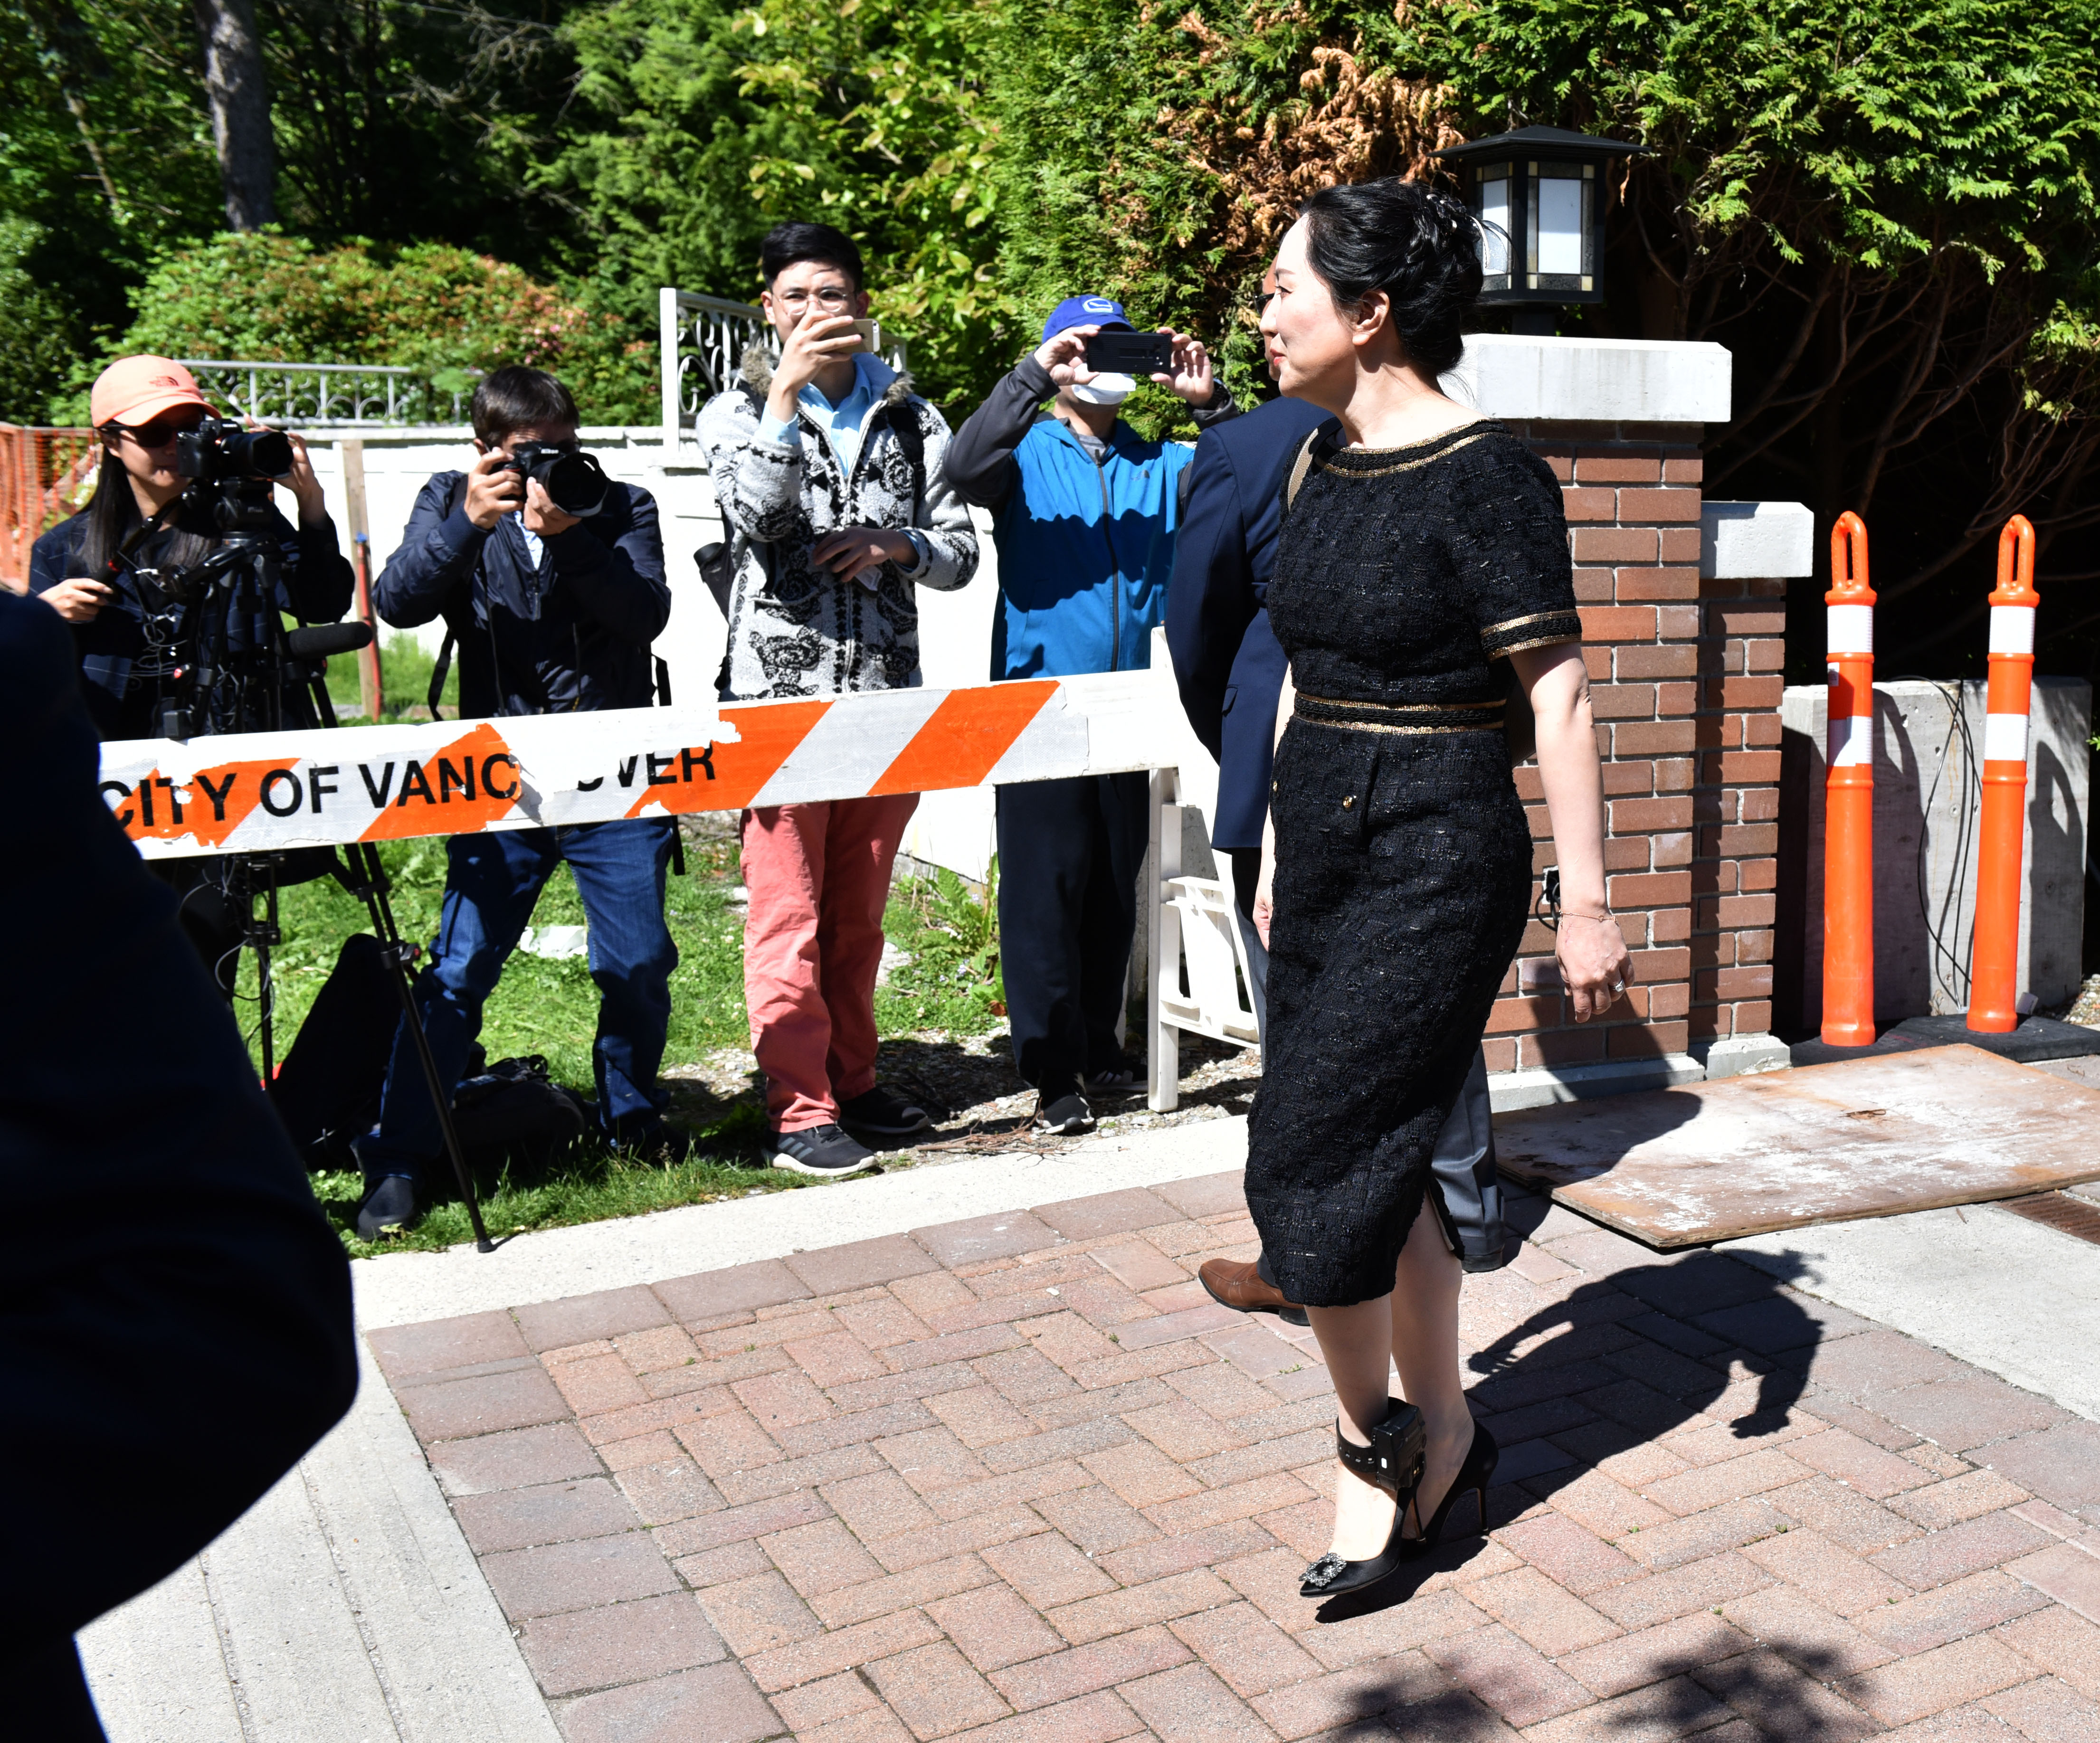 Chinese Huawei tech executive Meng Wanzhou leaves her Vancouver home on May 27 ,2020, to appear in British Columbia Supreme Court. - Meng Wanzhou was dealt a legal setback Wednesday when a Canadian judge ruled that proceedings to extradite her to the US will go ahead. The decision on so-called double criminality, a key test for extradition, found that bank fraud accusations against Meng would stand up in Canada. The interim ruling denying Meng's attempt to gain her freedom means she will continue to live in Vancouver under strict bail conditions while her case plays out. (Photo by Don MacKinnon/AFP via Getty Images)